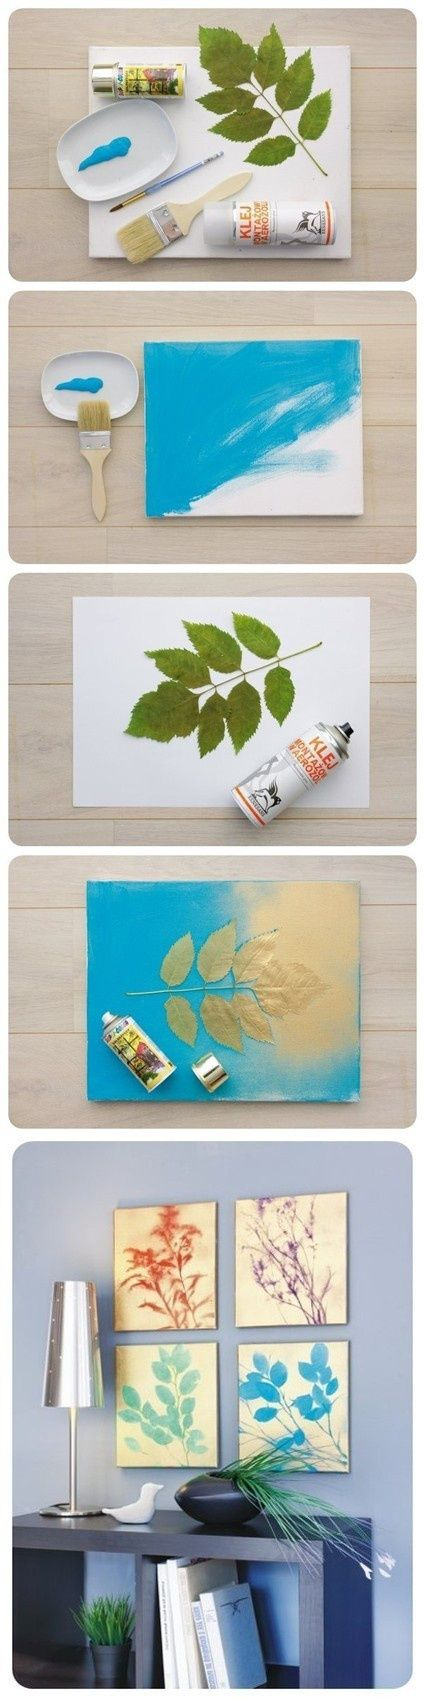 "Classic wall paintings|Features Benjamin Moore CC-640 Blue Grass wall paint| Benjamin Moore Golden Honey CC214 wall paint color|Think Spring-Featuring Benjamin Moore 2029-40 Stem Green wall paint color.|Put Your Feet Up - by Kate feature Benjamin Moore CSP -920 Golden Thread wall paint color|Glitter Wall Paint!!!|Paint Together Wall! Painting for two.|""Blush"" by Blondies Loft"